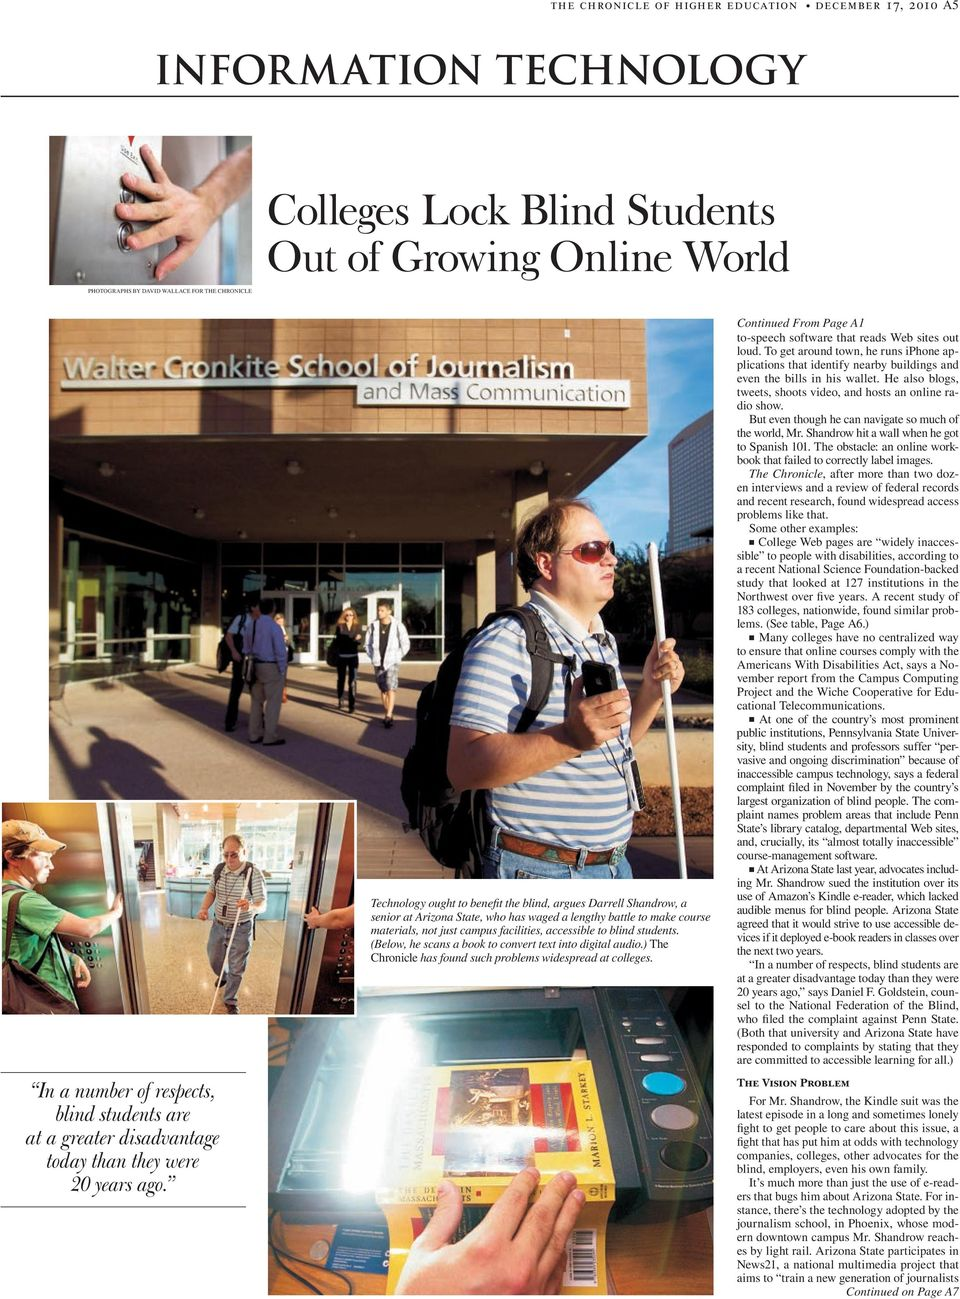 Technology ought to benefit the blind, argues Darrell Shandrow, a senior at Arizona State, who has waged a lengthy battle to make course materials, not just campus facilities, accessible to blind